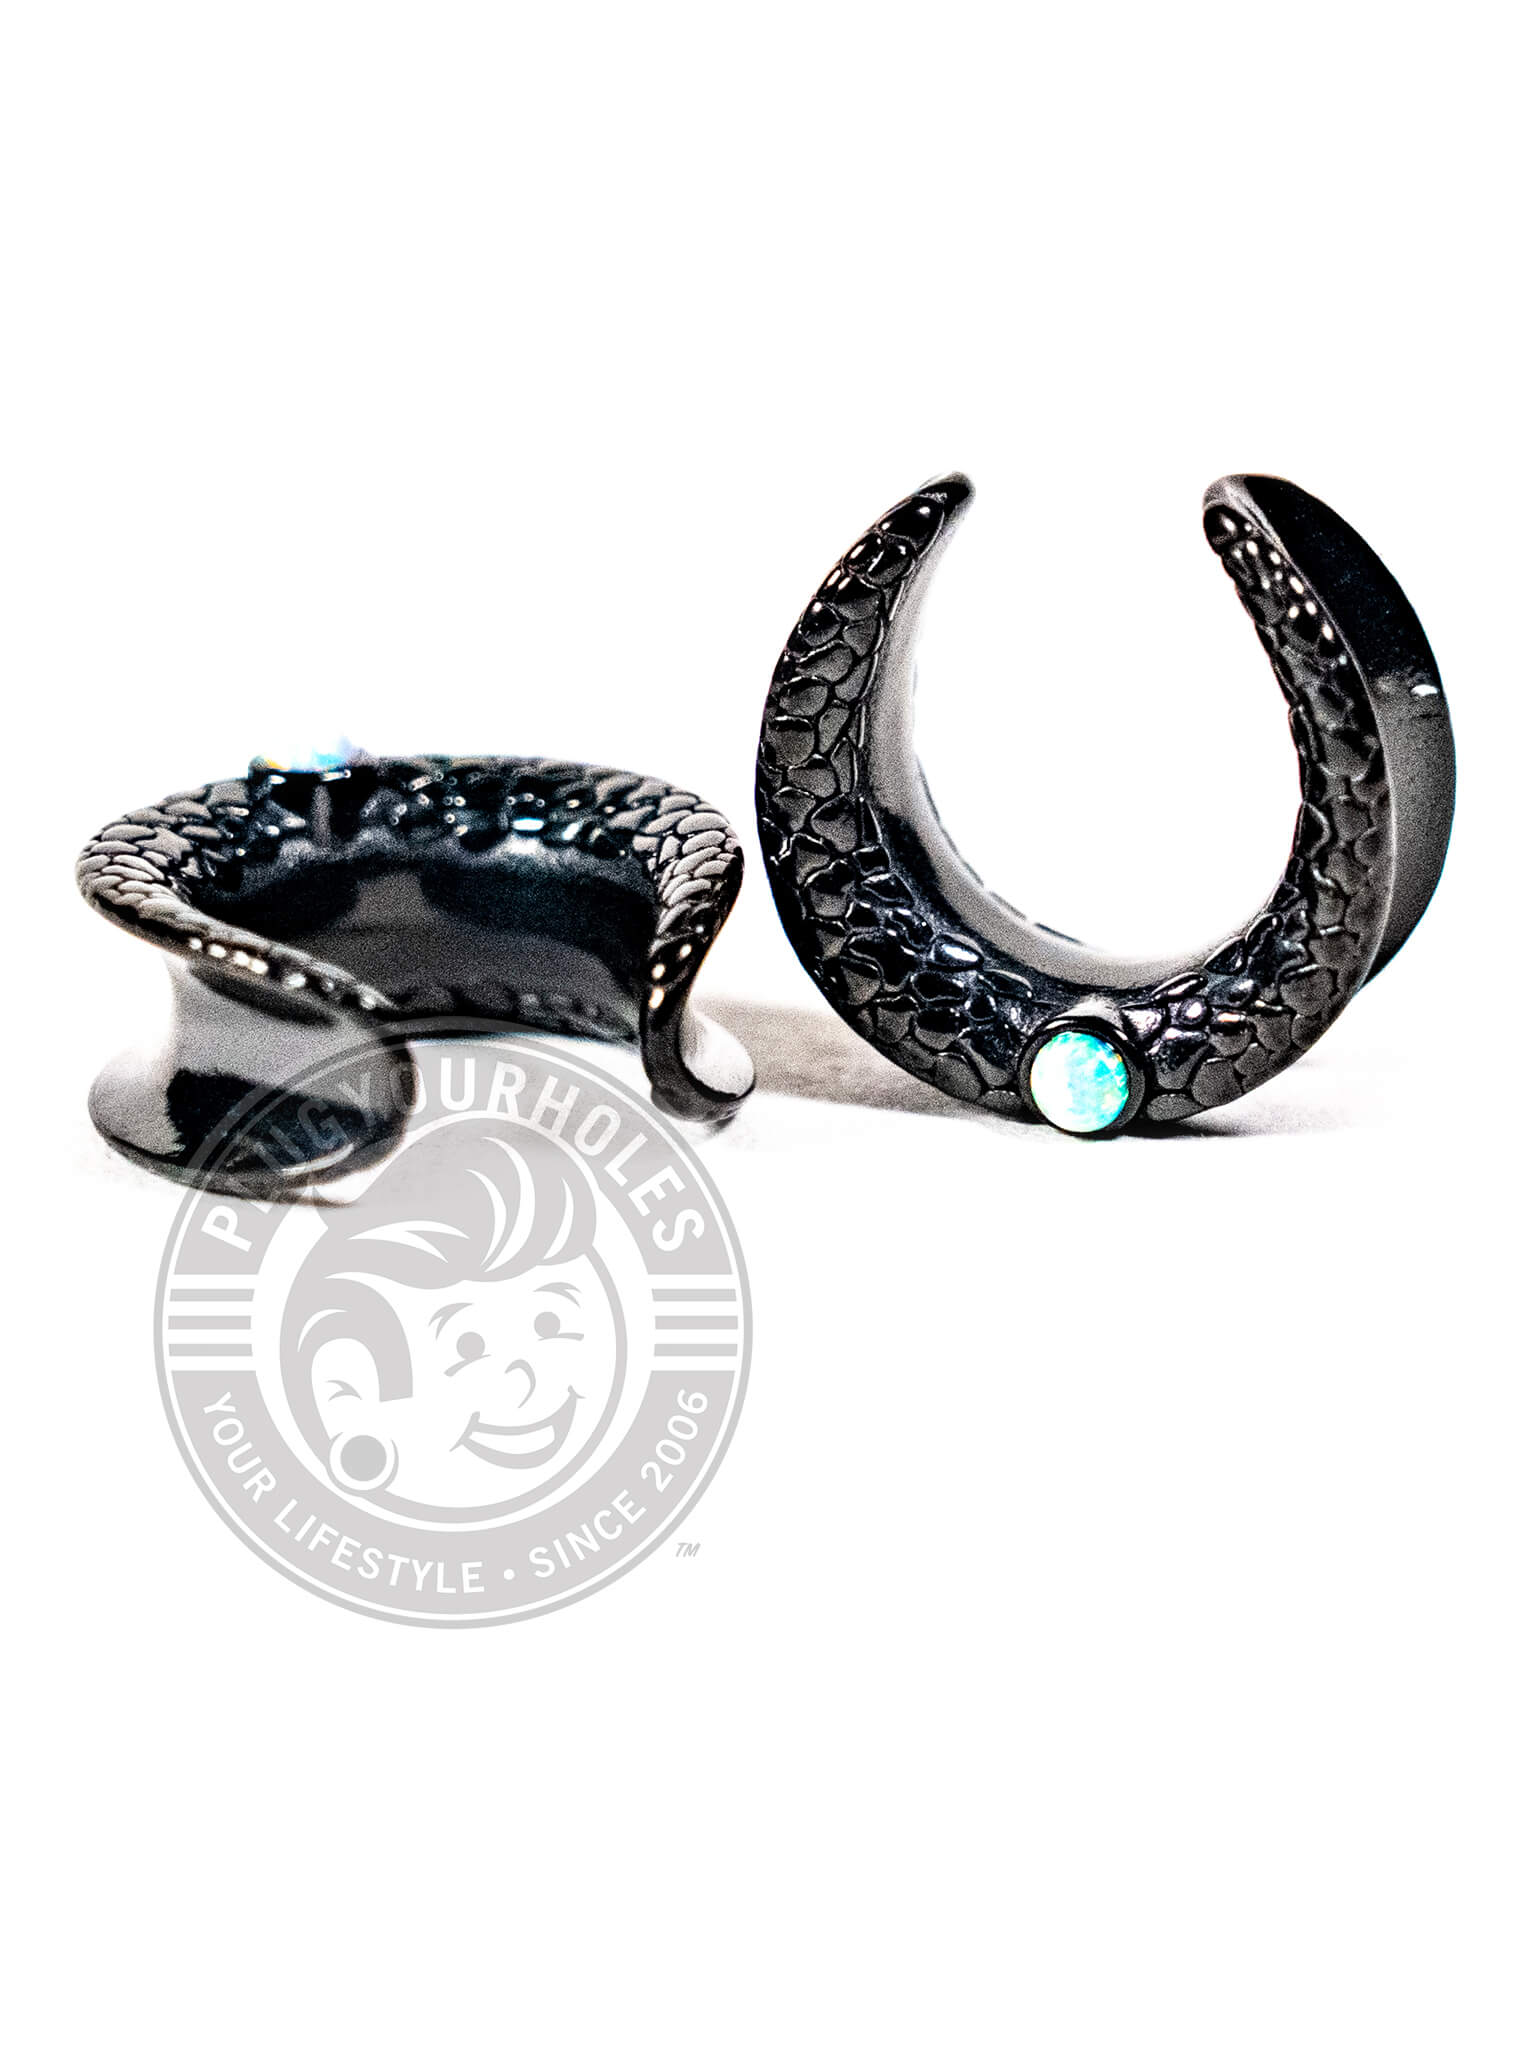 Black Snake Skin Opalite Crescent Steel Saddles